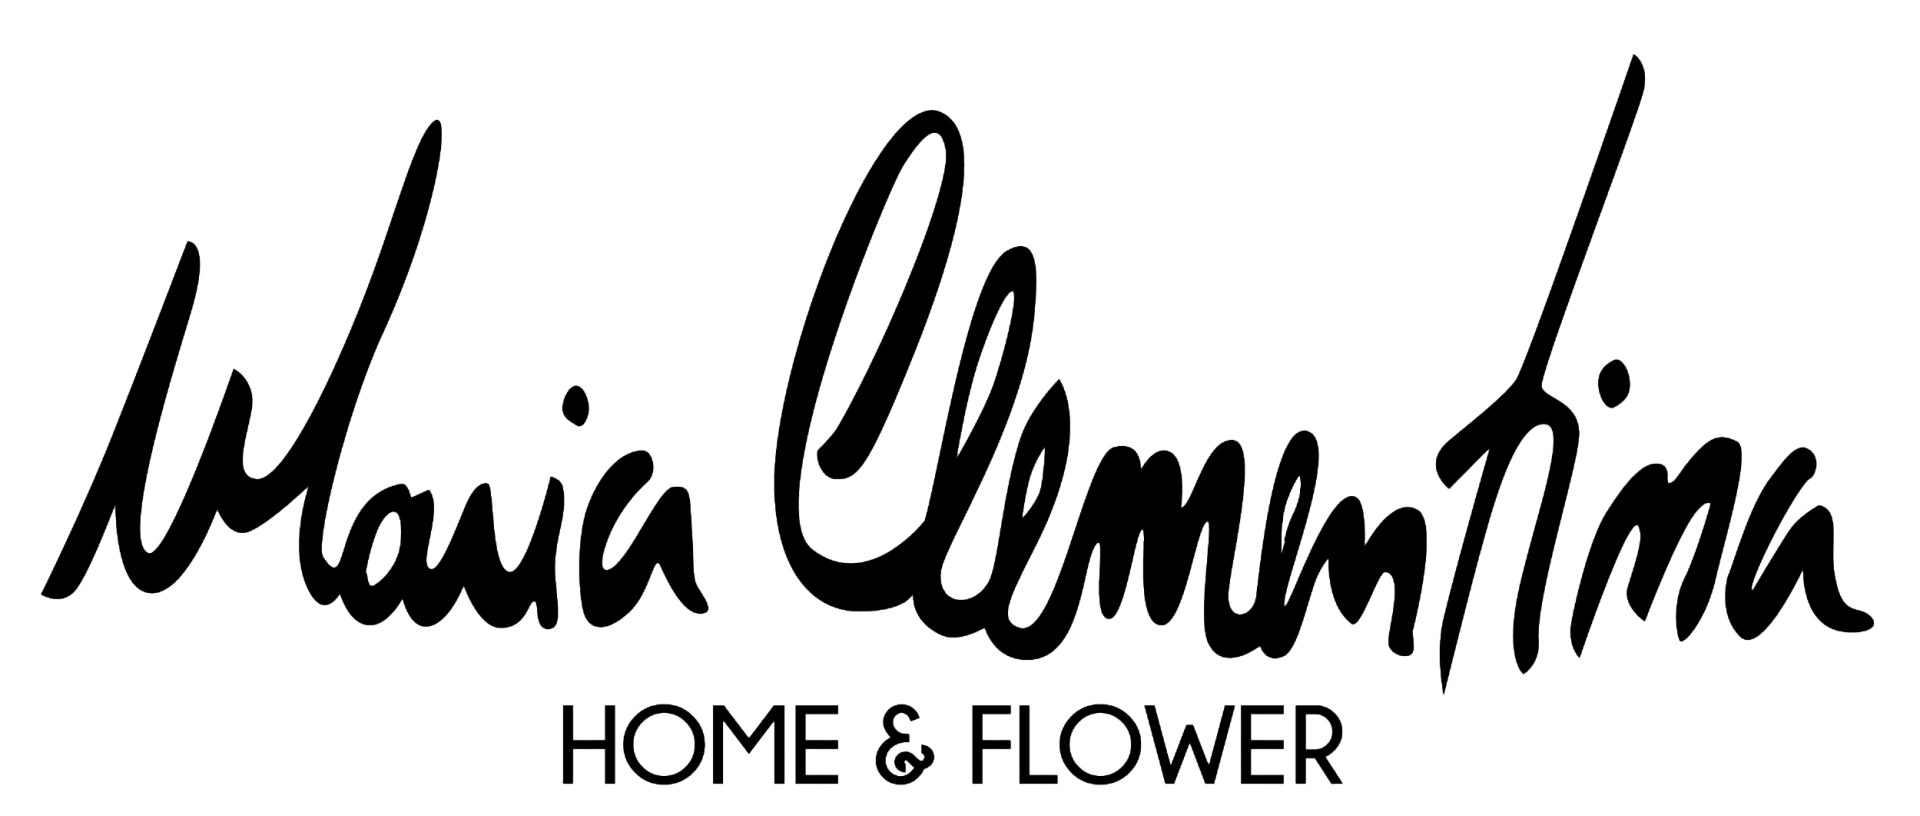 Maria Clementina Home & Flower